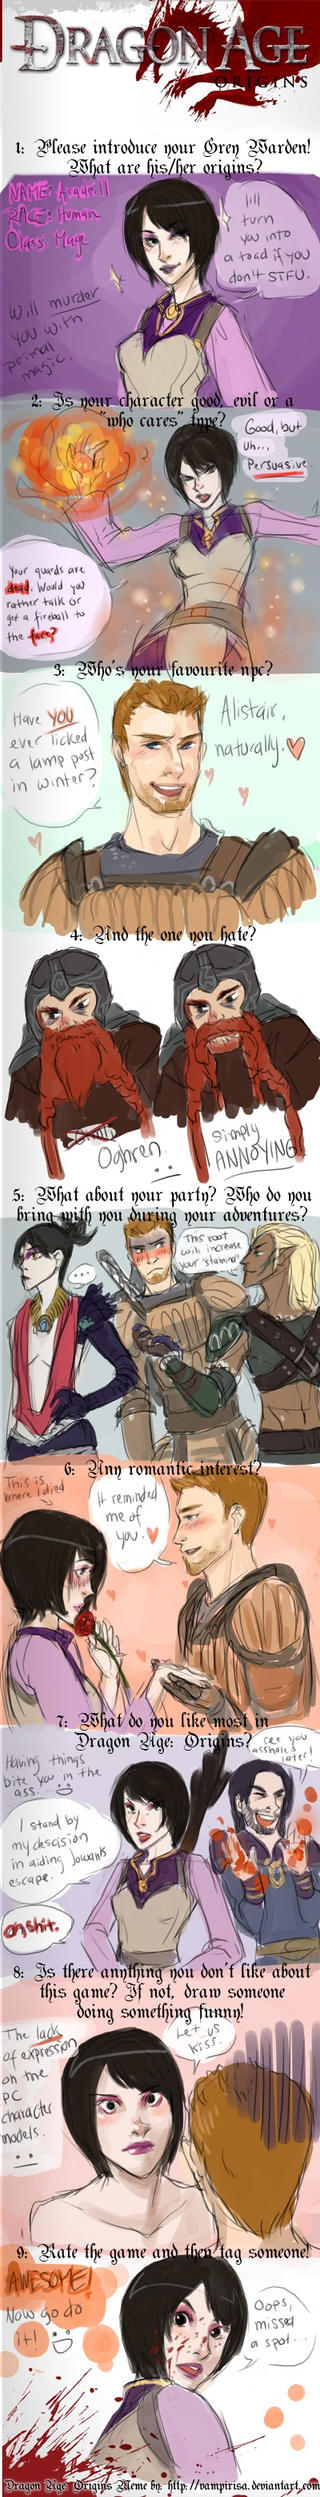 dragon age origins meme by kiikii-sempai